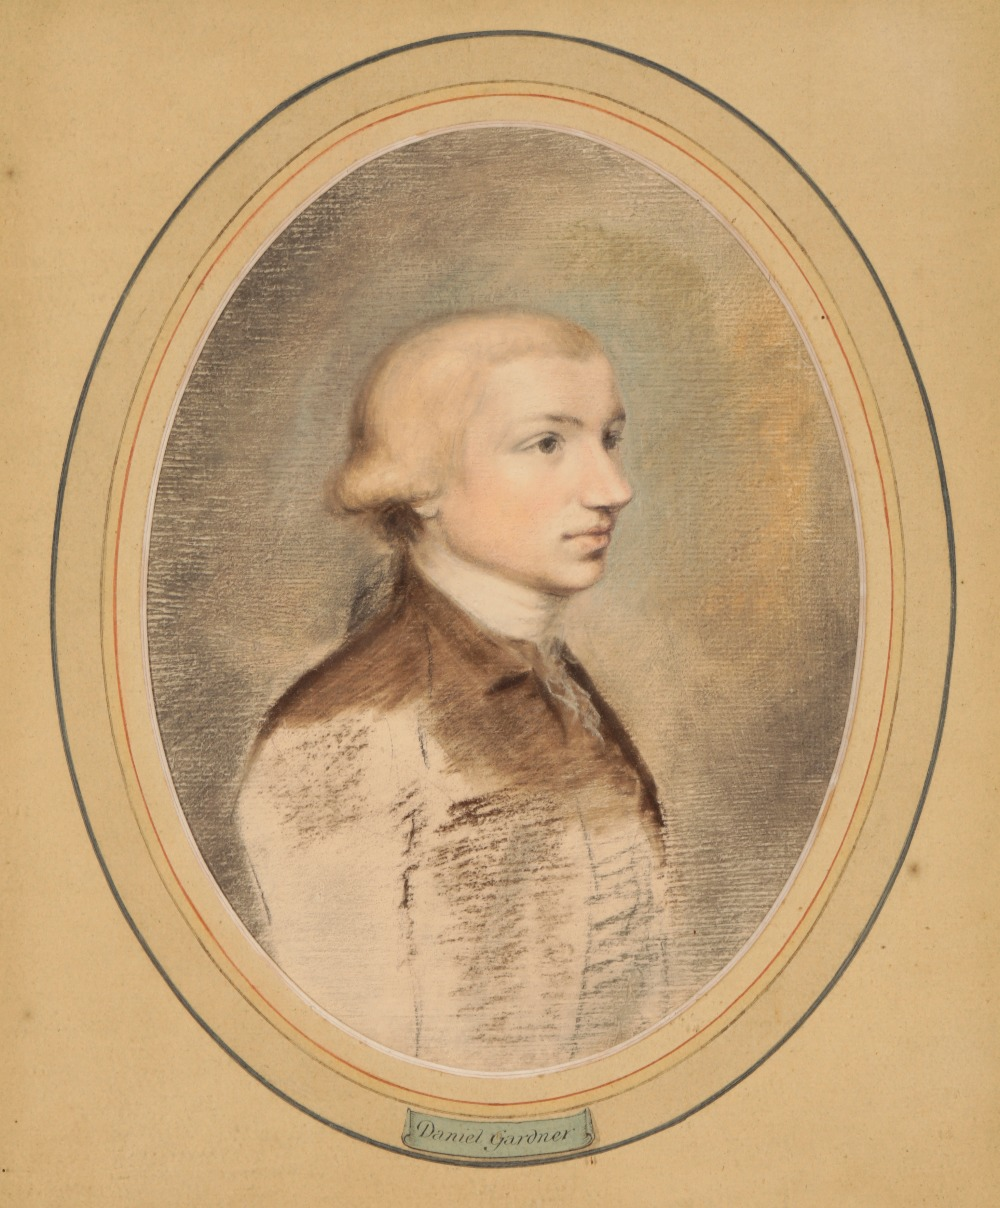 Lot 169 - ATTRIBUTED TO DANIEL GARDNER (c. 1750-1805) A portrait of a young man